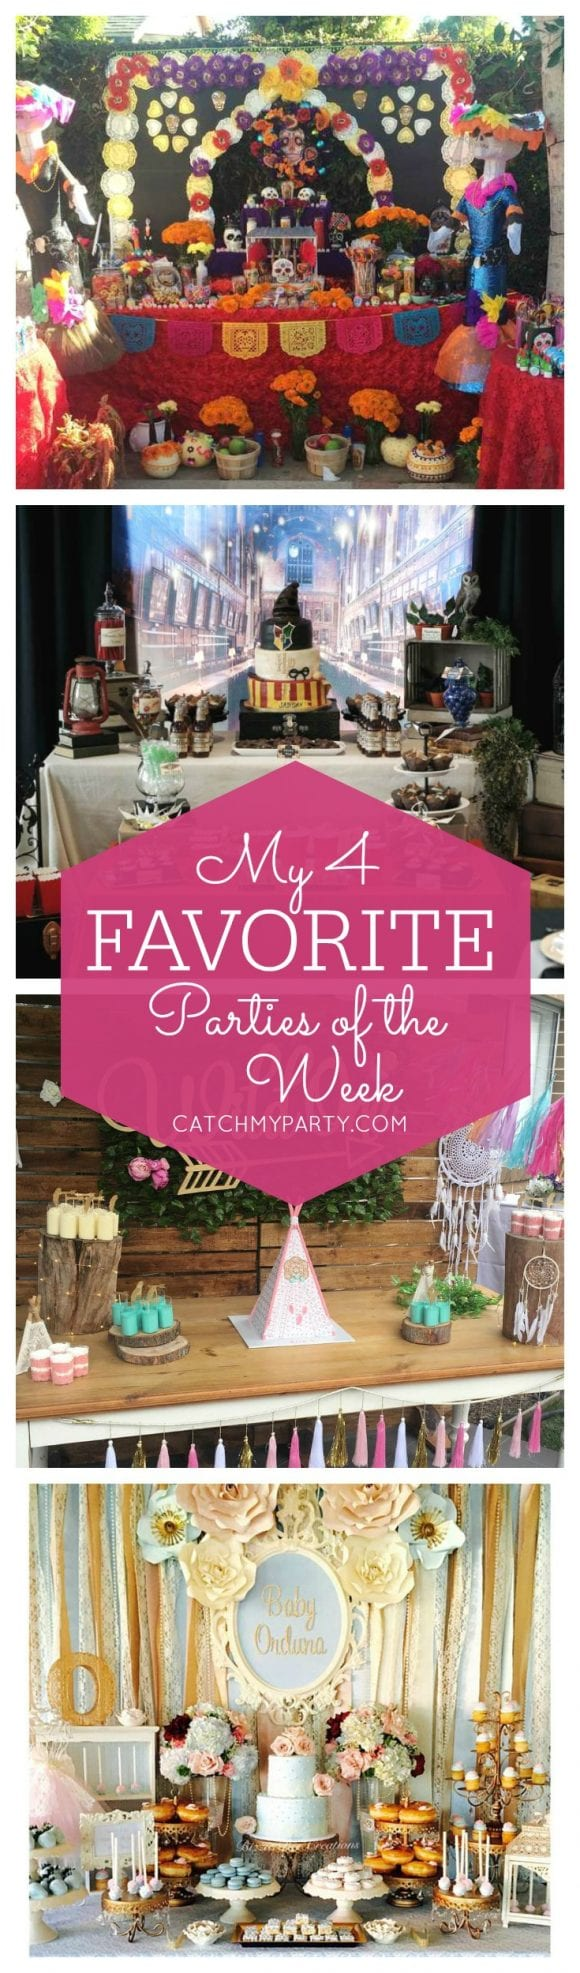 My favorite parties this week include a Dia de los Muertos birthday party, a Harry Potter birthday party, a Wild One 1st birthday party and a Vintage Victorian baby shower! | Catchmyparty.com